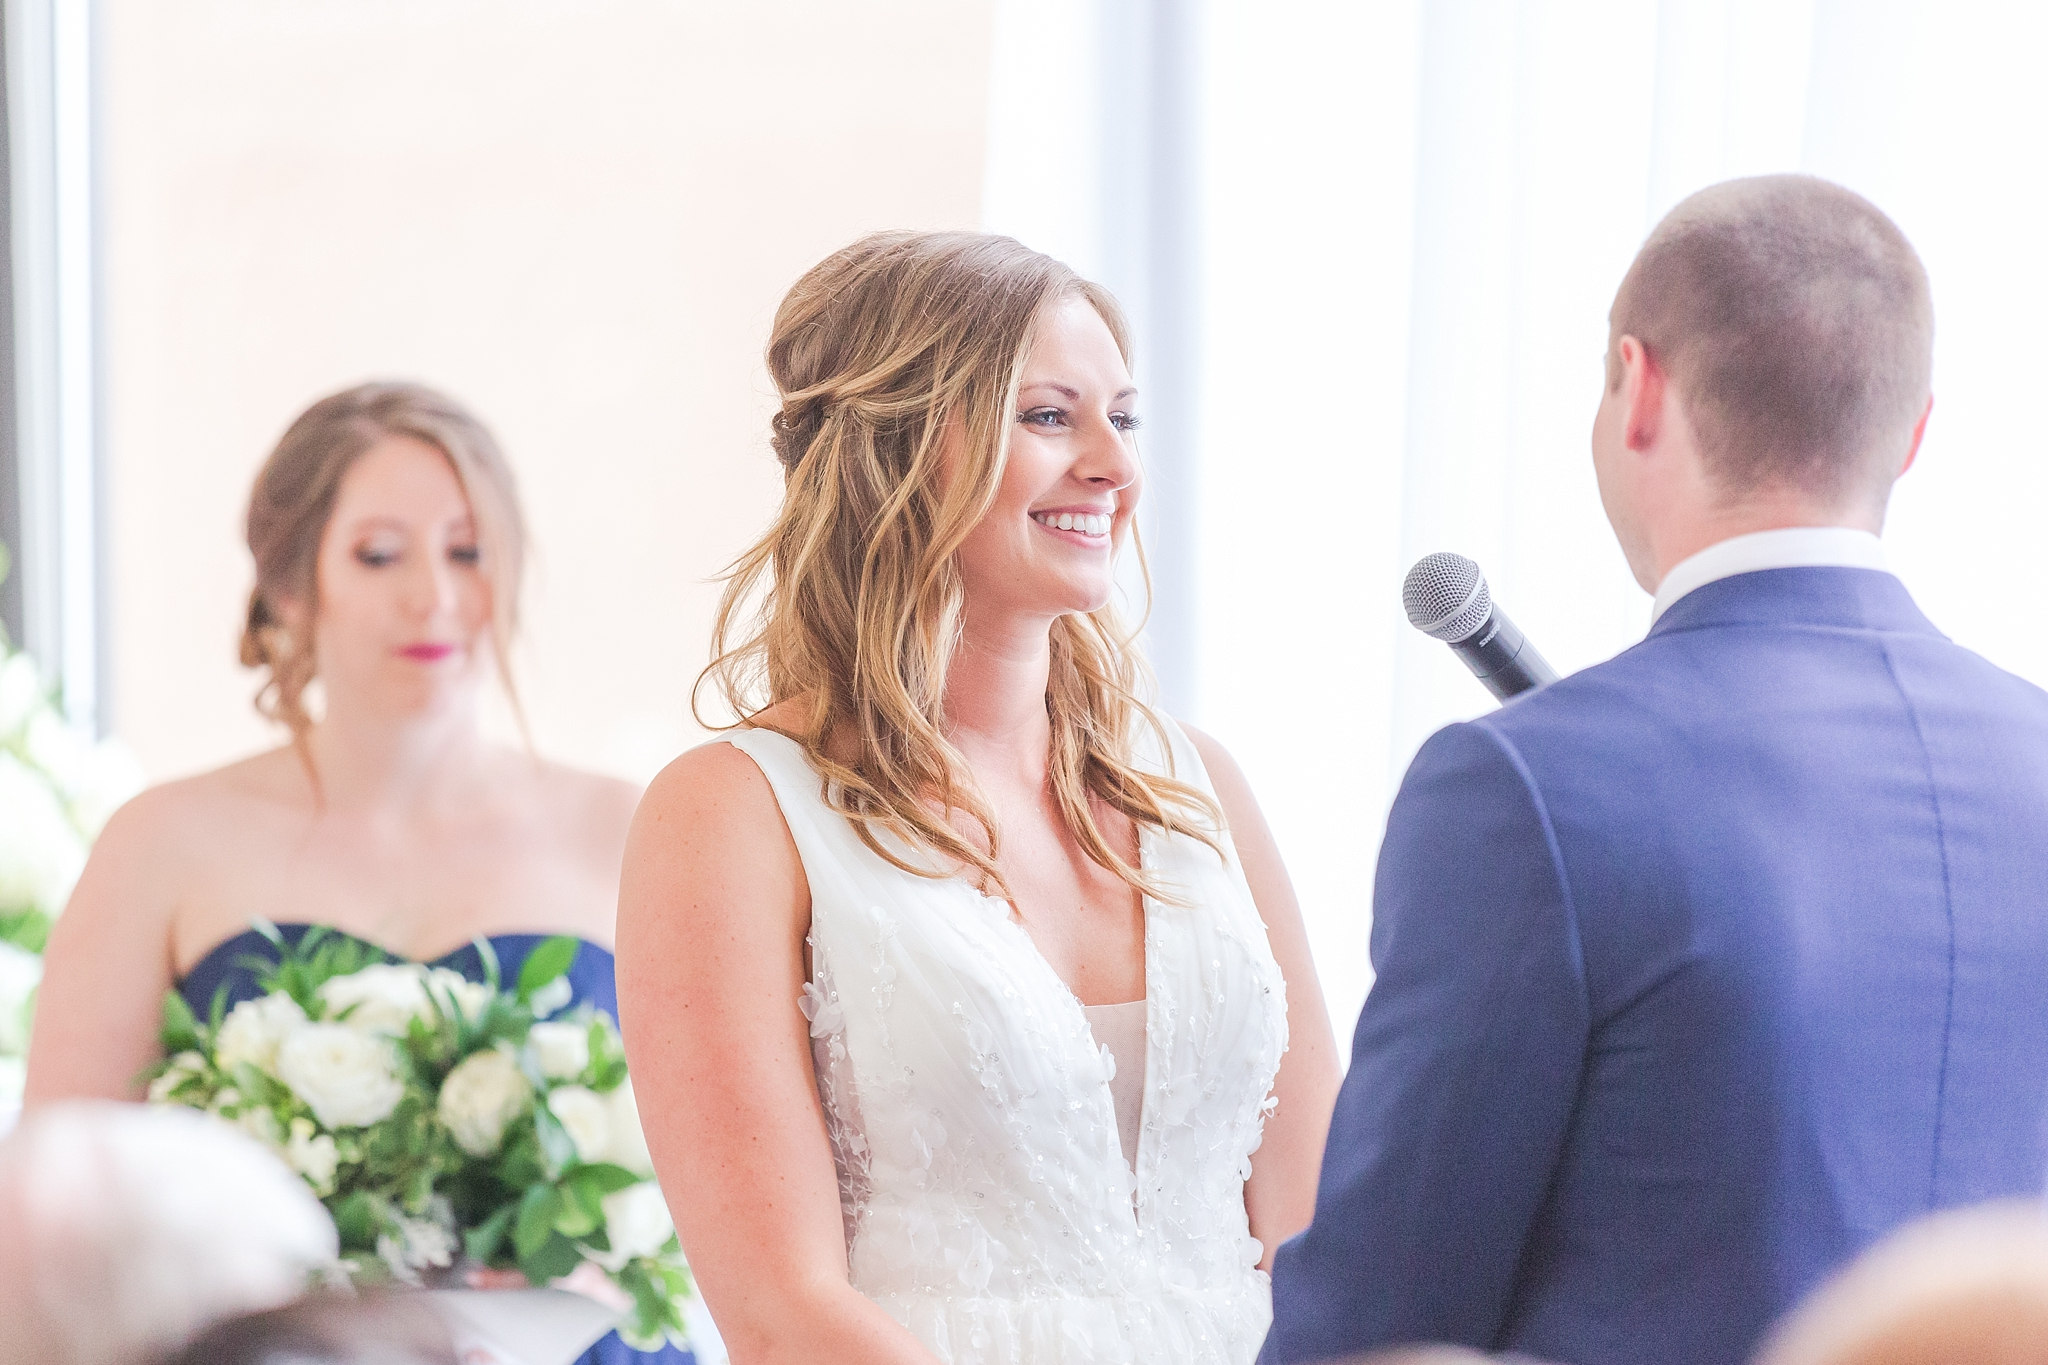 joyful-candid-laid-back-wedding-photos-in-ann-arbor-michigan-and-at-the-eagle-crest-golf-resort-by-courtney-carolyn-photography_0073.jpg